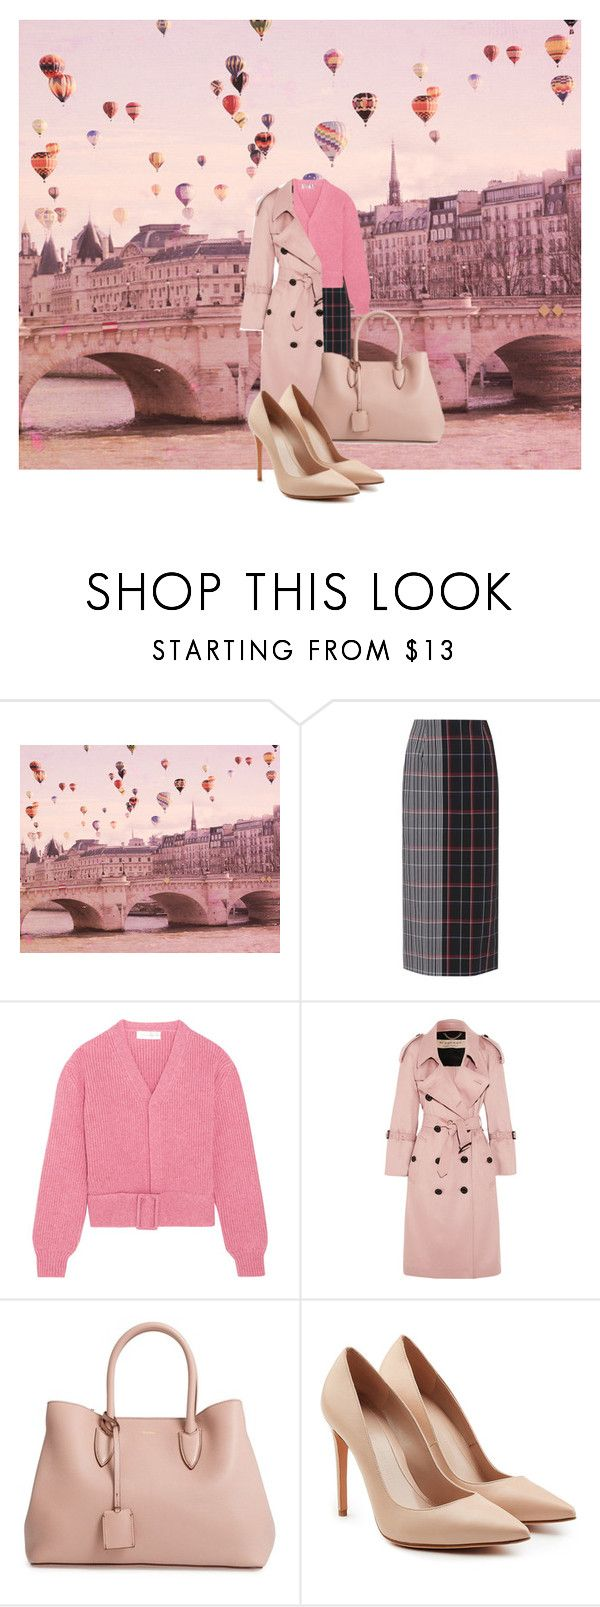 """""""Up in the Air Balloon"""" by mpmongillo ❤ liked on Polyvore featuring Victoria Beckham, Burberry, MaxMara and Alexander McQueen"""